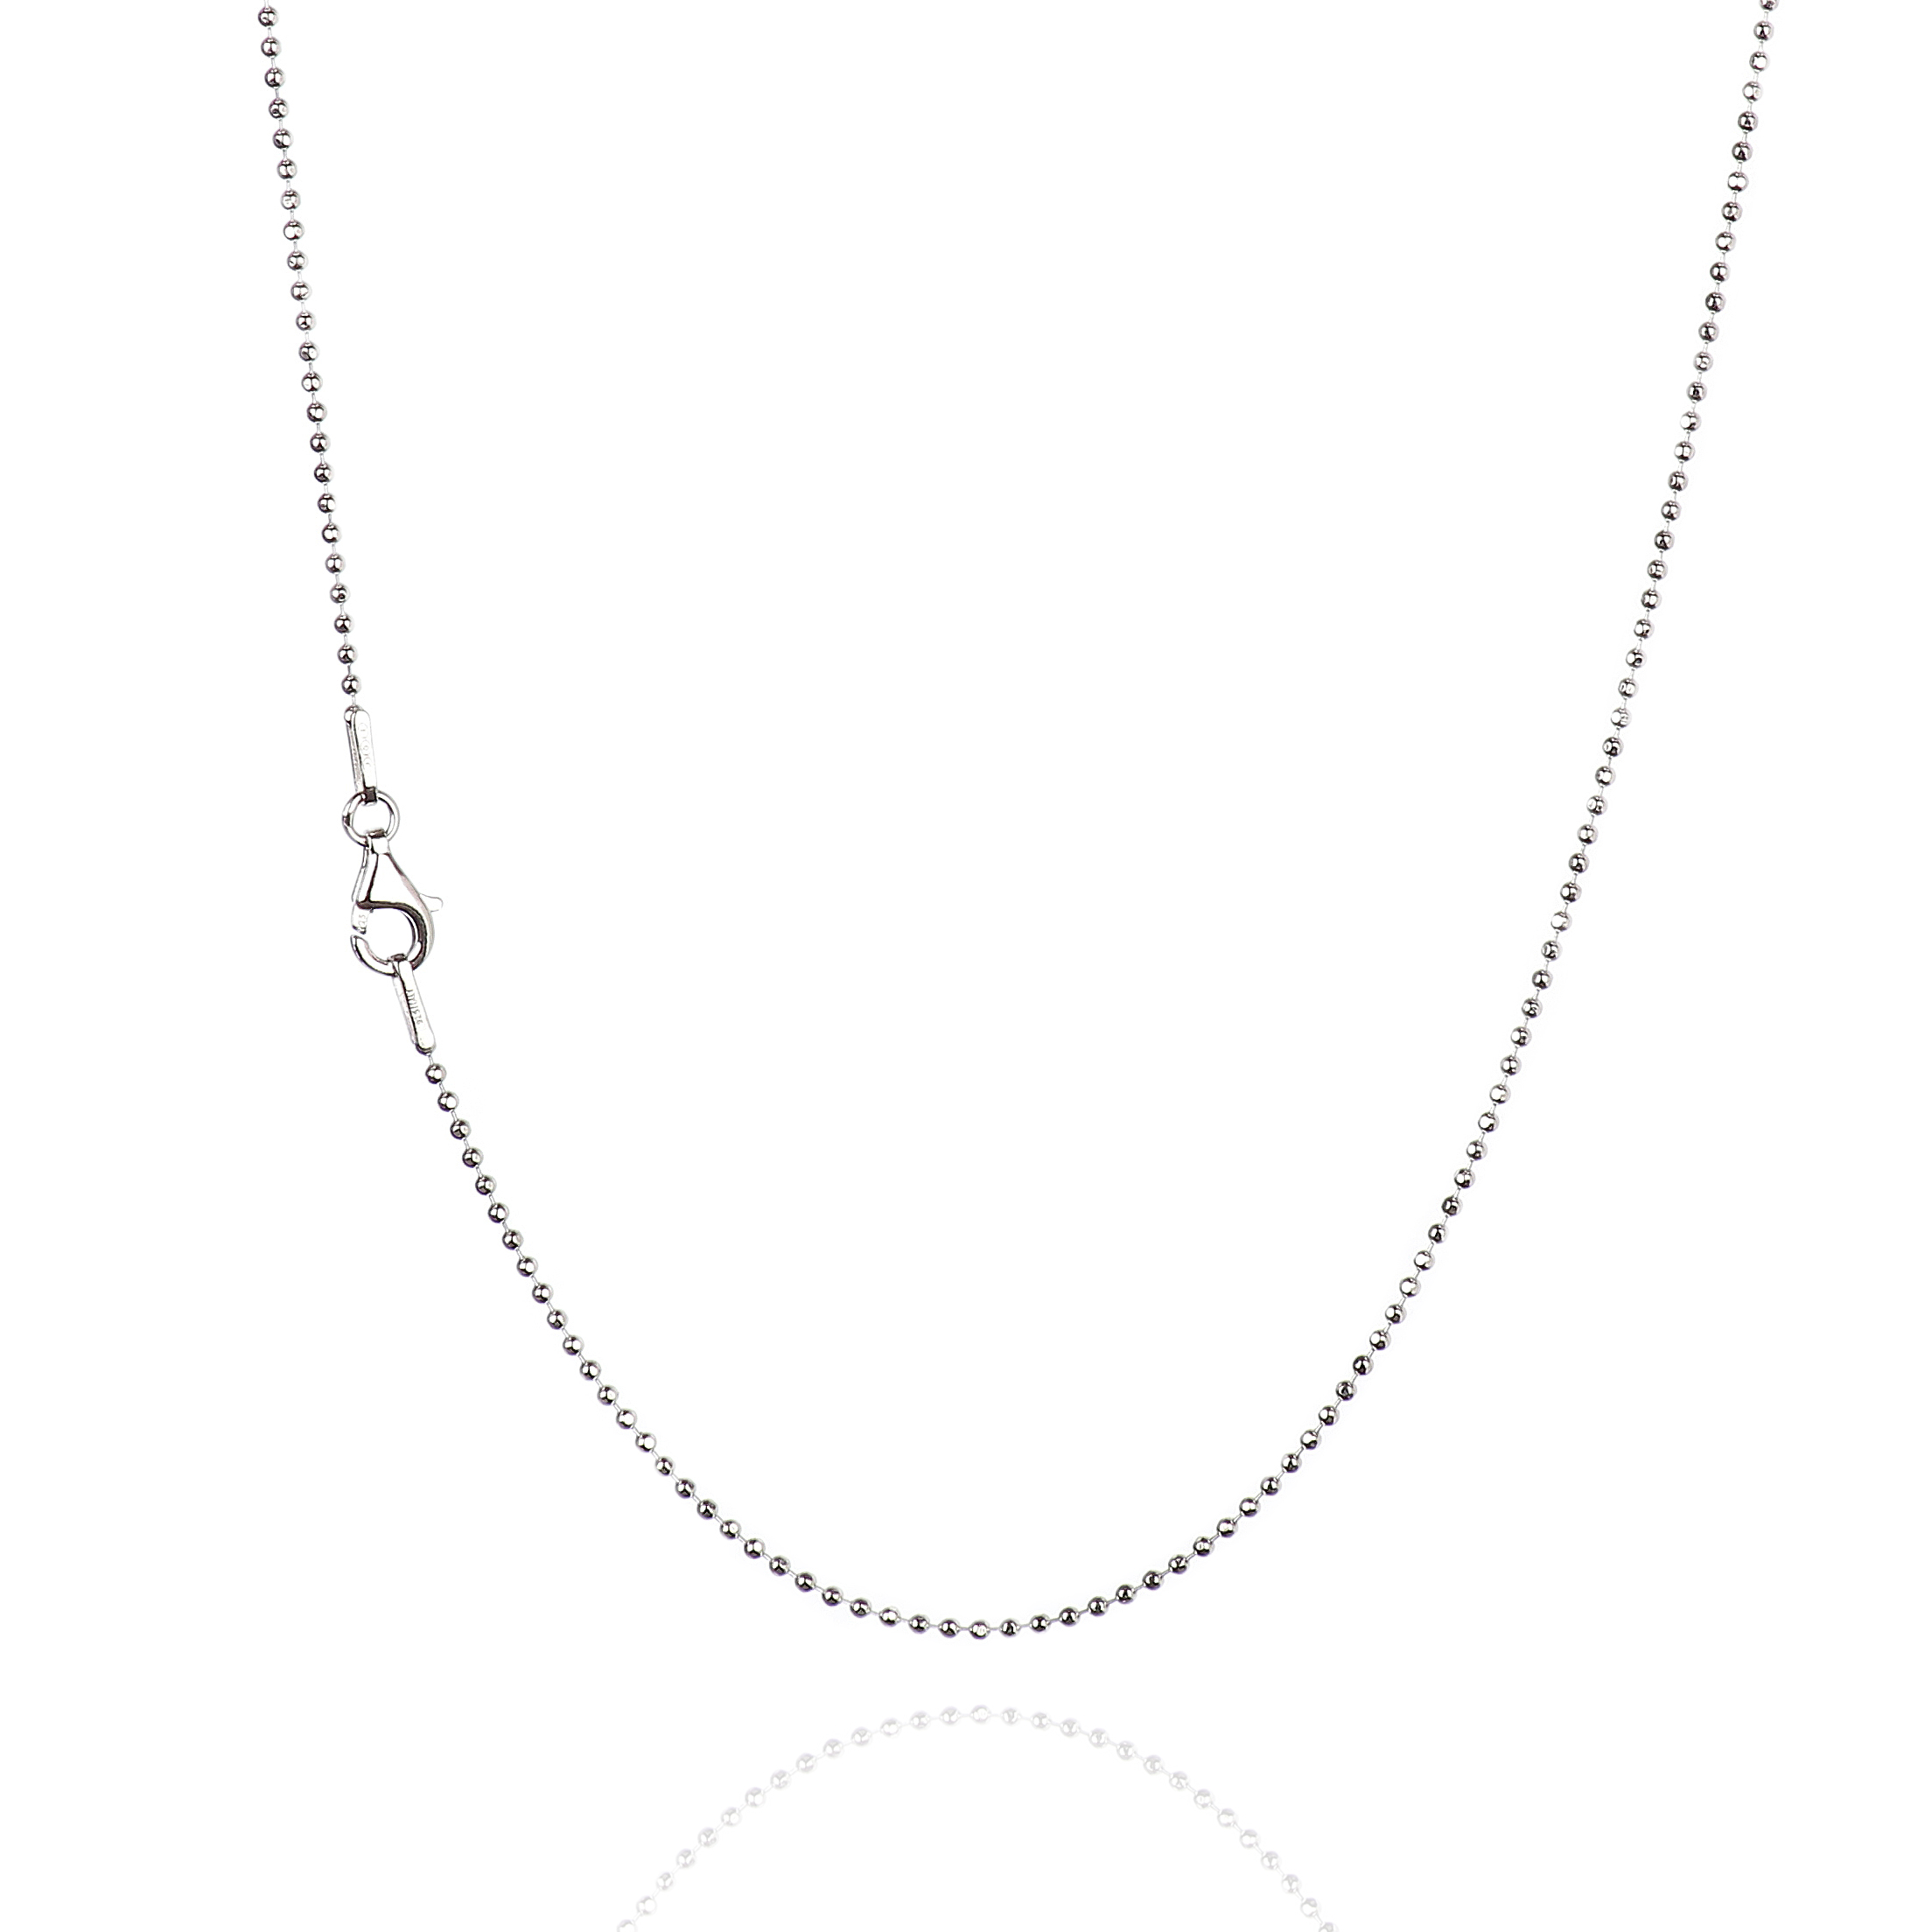 Chains .925 Sterling Silver 1.00MM Diamond-Cut Cable Link Necklace